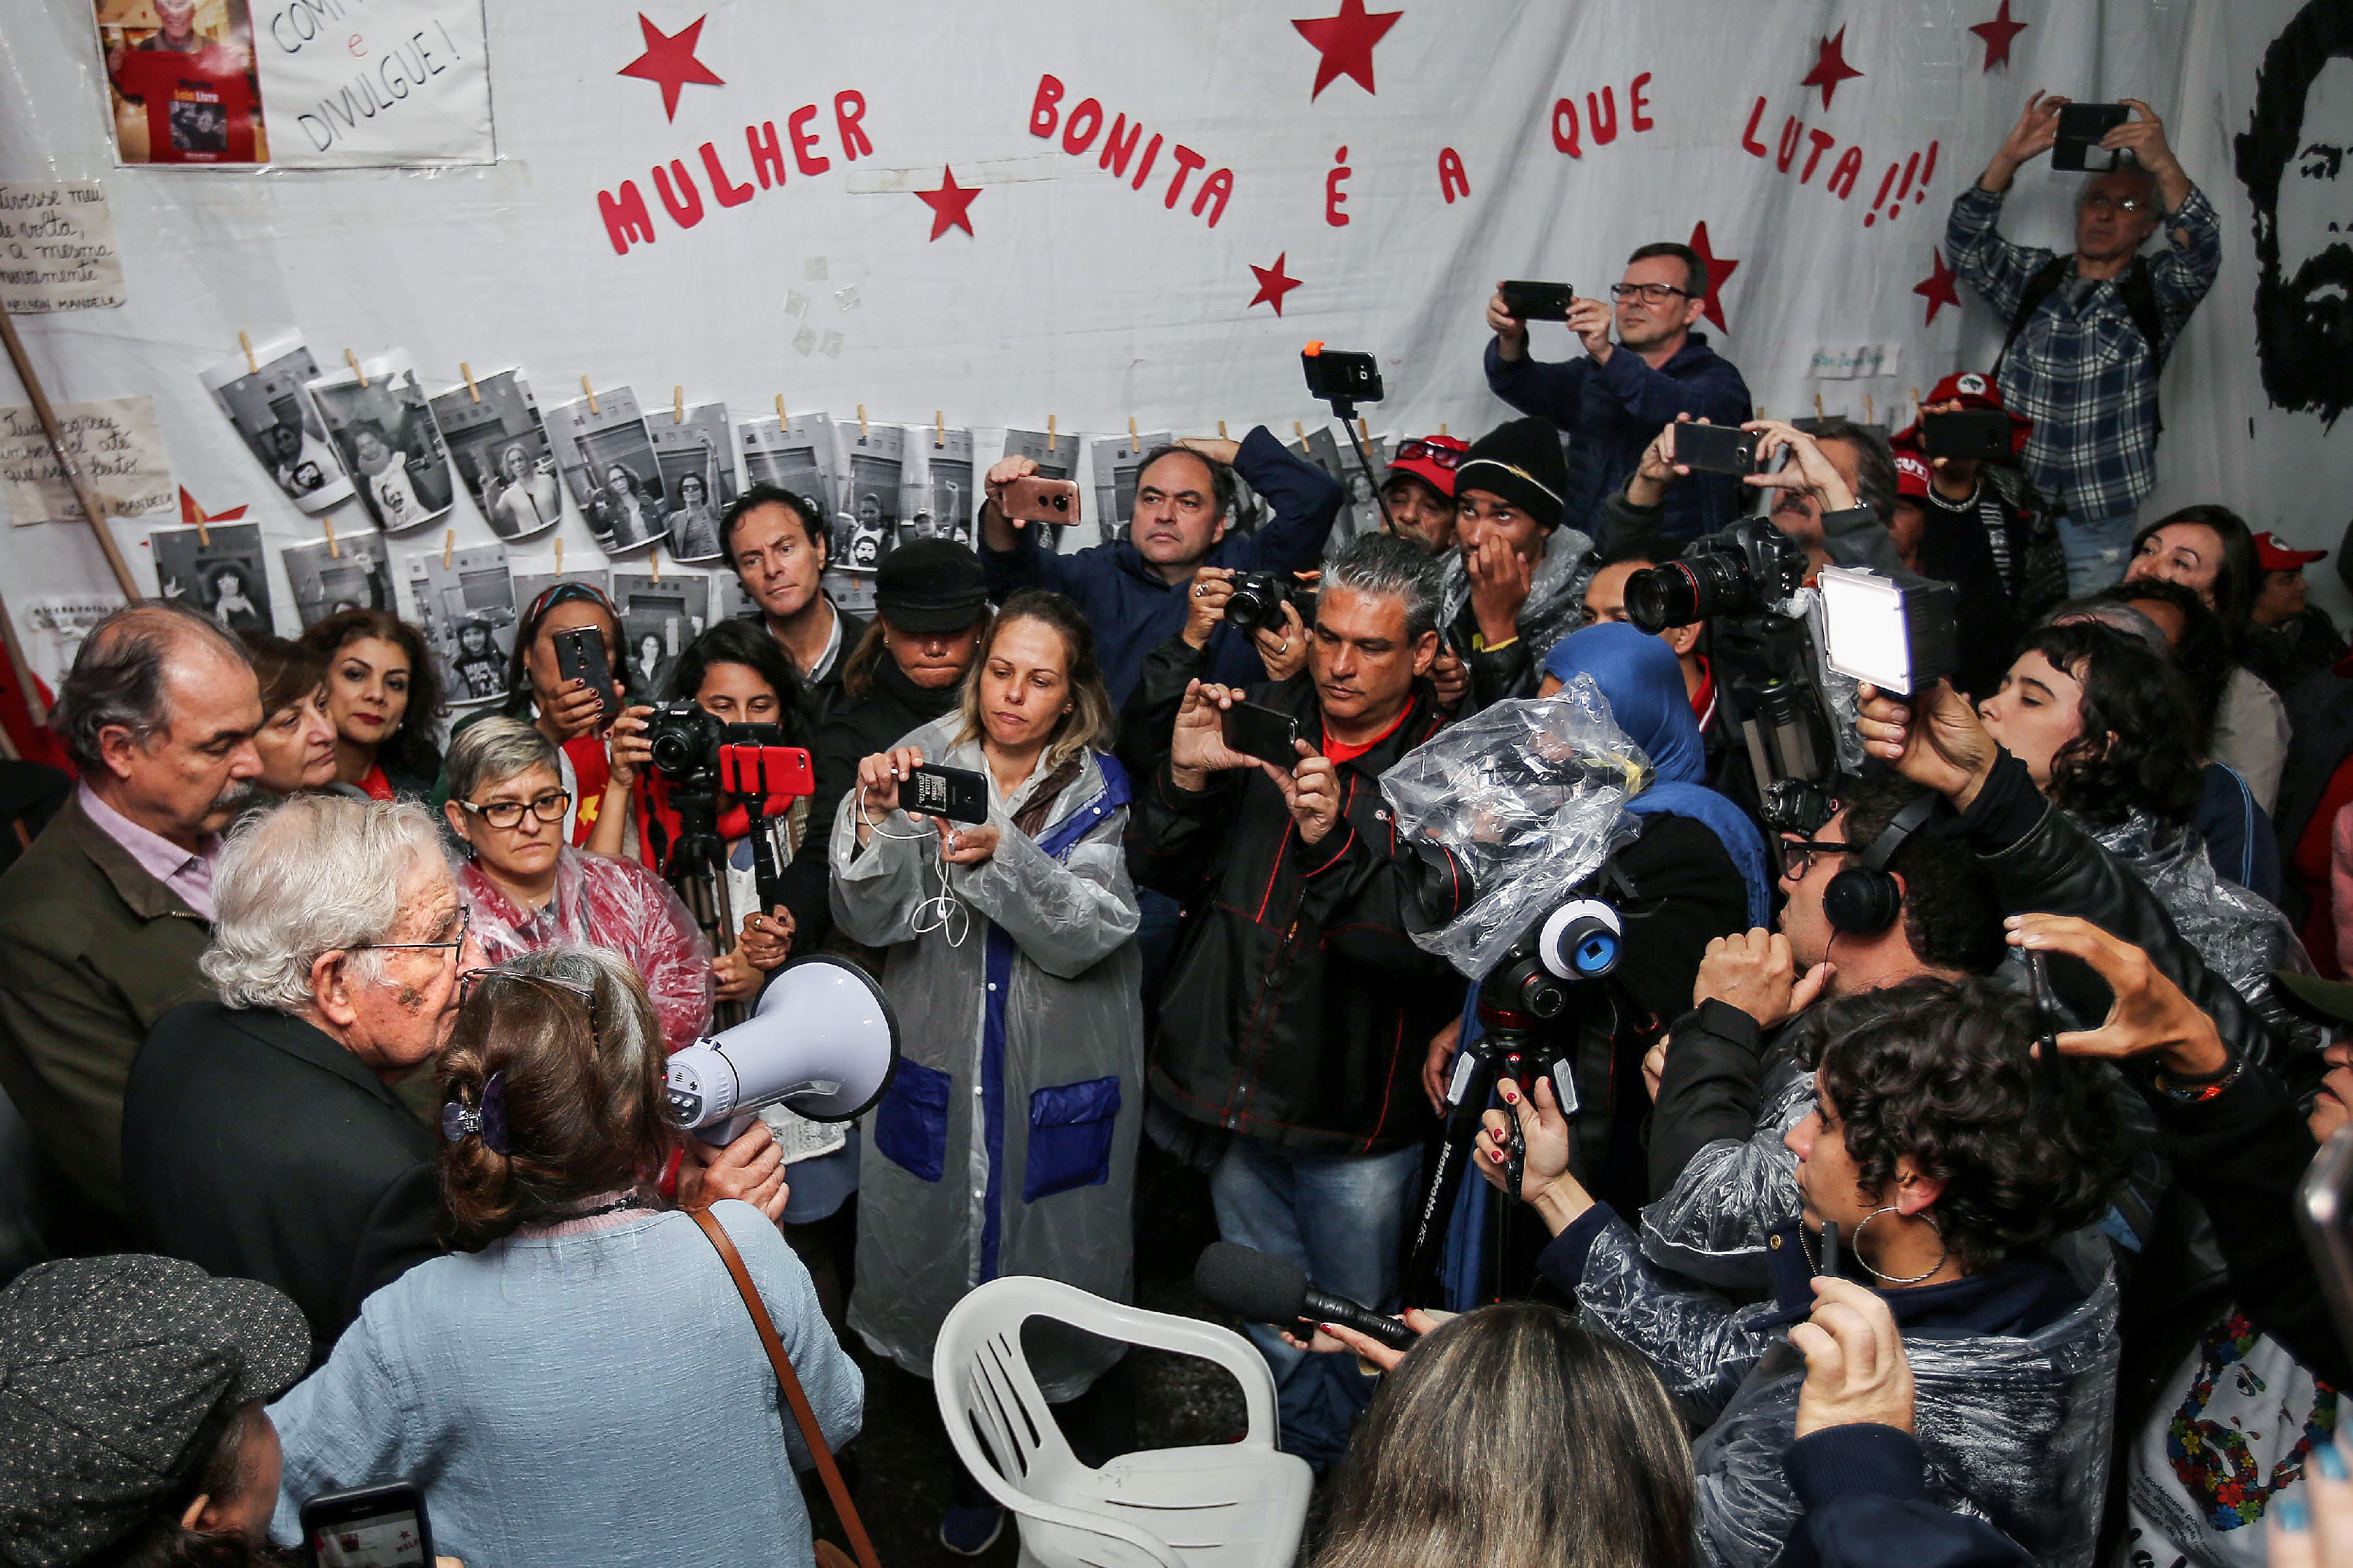 US linguist and political activist Noam Chomsky (R), speaks to PT militants after visiting former President Luis Inacio Lula da Silva, arrested for corruption in the Federal Police Superintendence in Curitiba, Brazil on September 20, 2018. (Photo by Heuler Andrey / AFP) (Photo credit should read HEULER ANDREY/AFP/Getty Images)